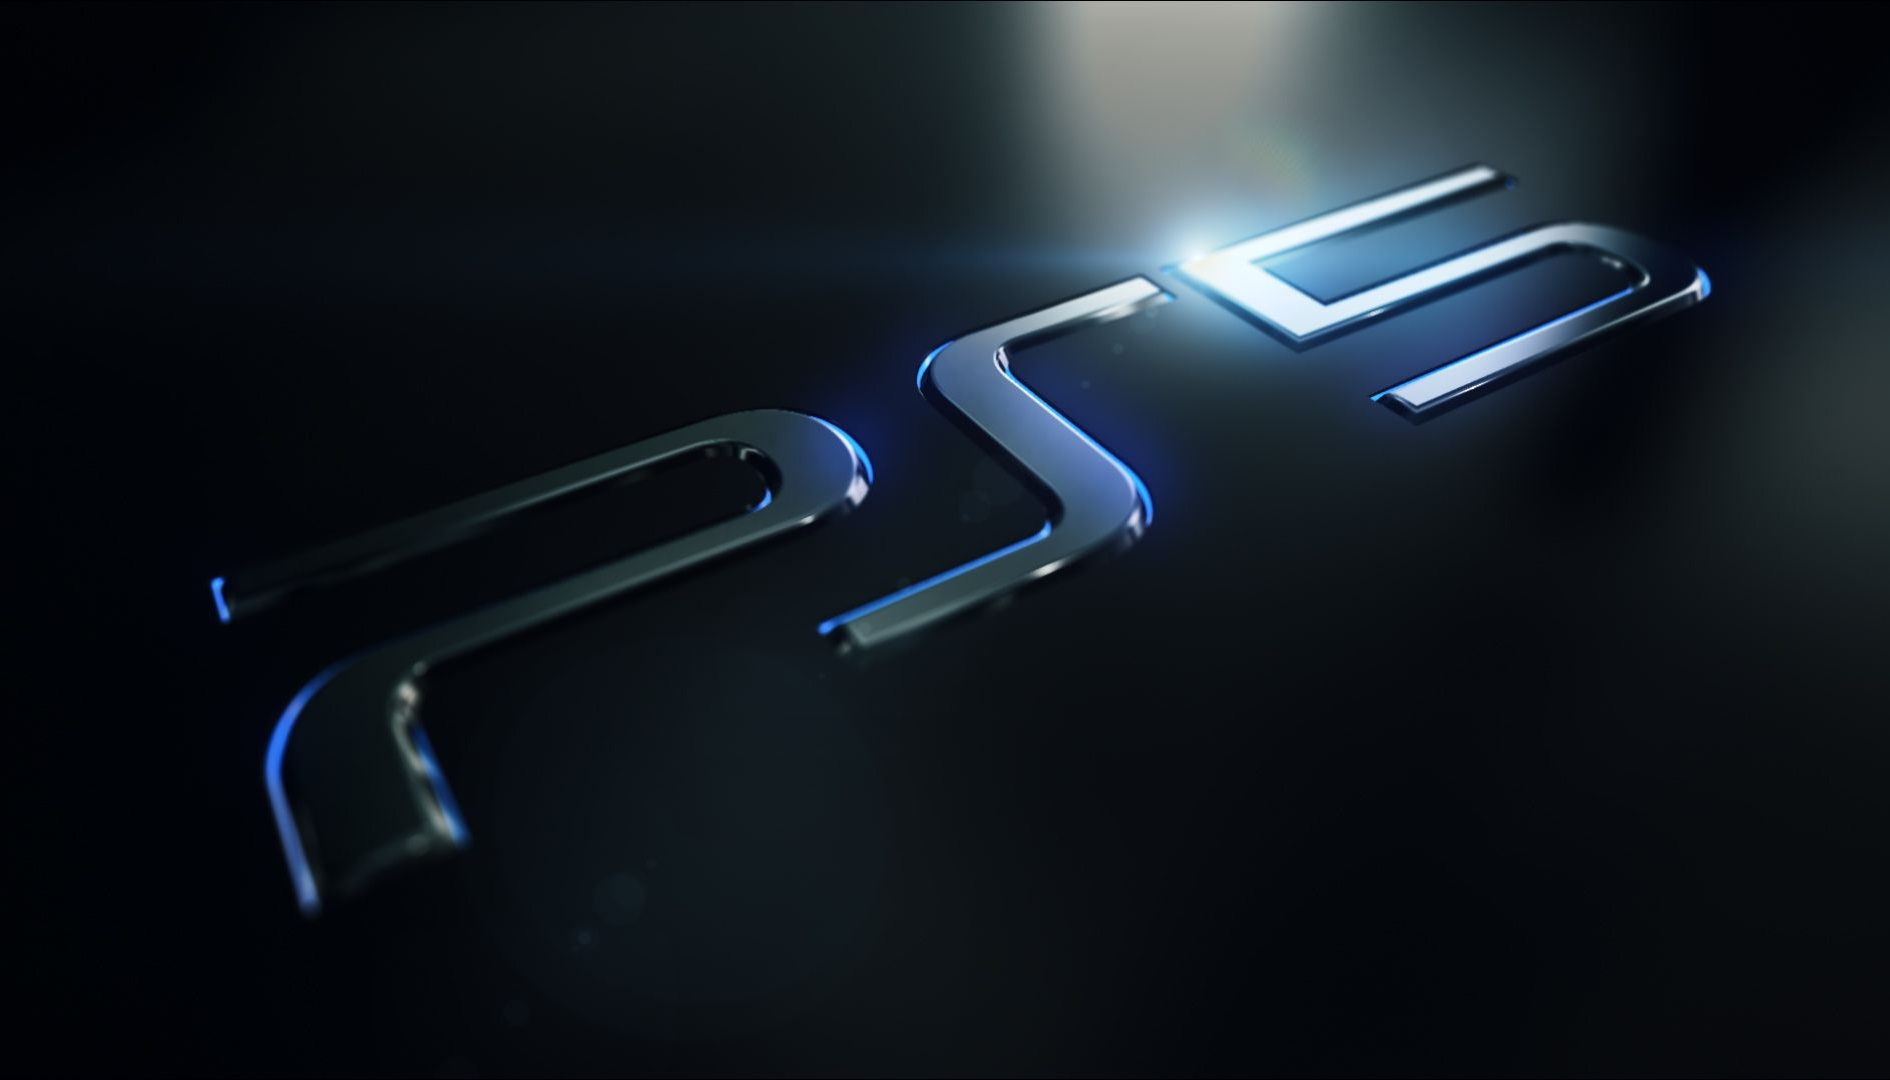 PS5 è una console per hardcore gamer, secondo fonti interne anonime